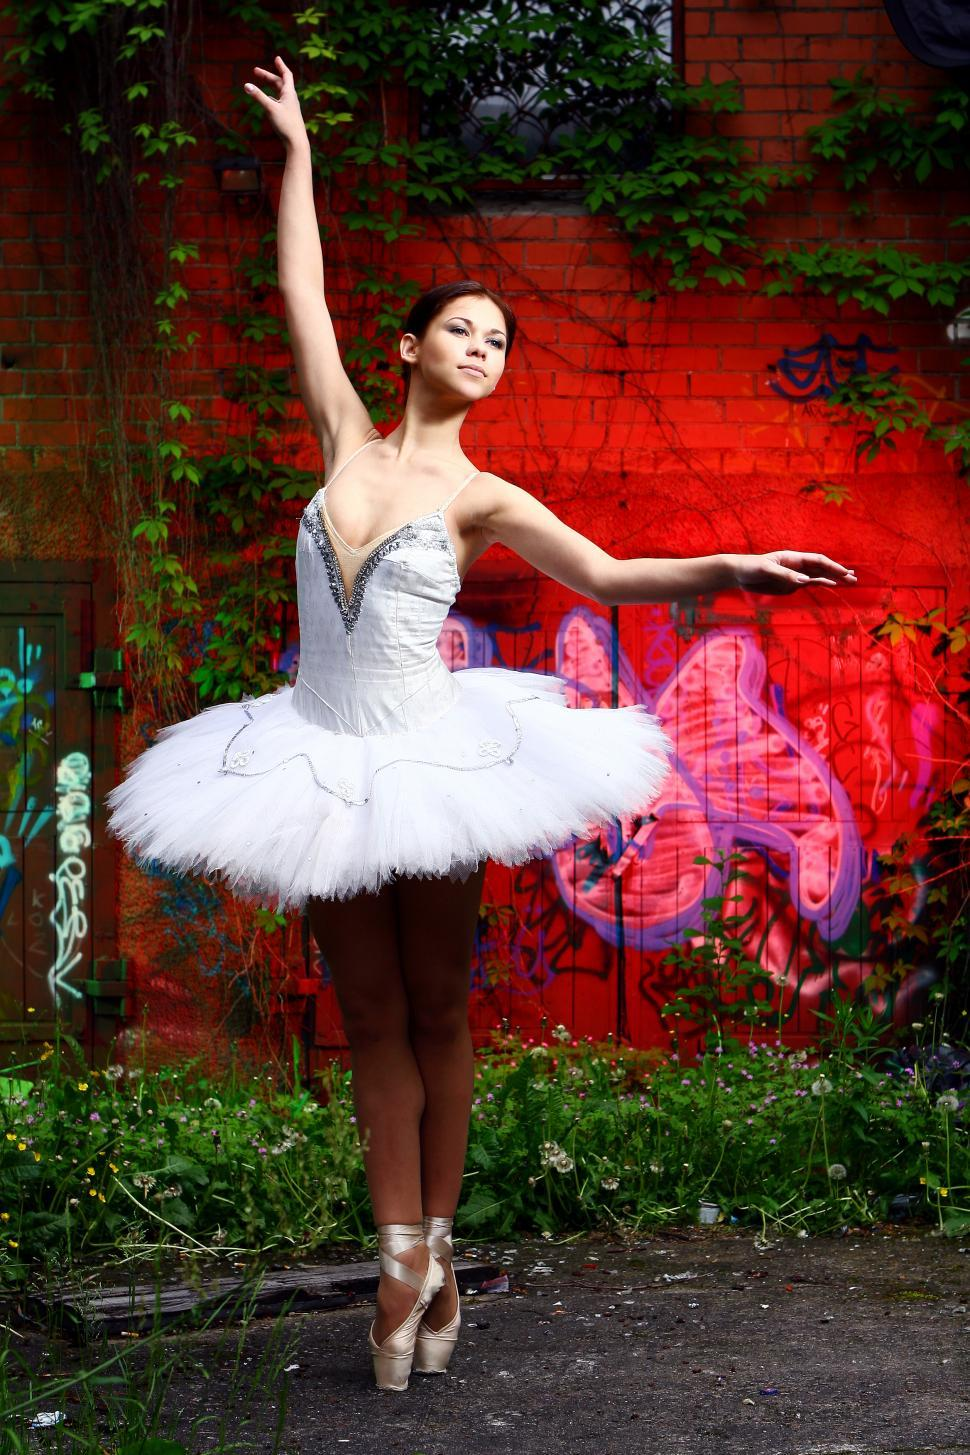 Download Free Stock Photo of beautiful ballerina dancing ballet on colorful background